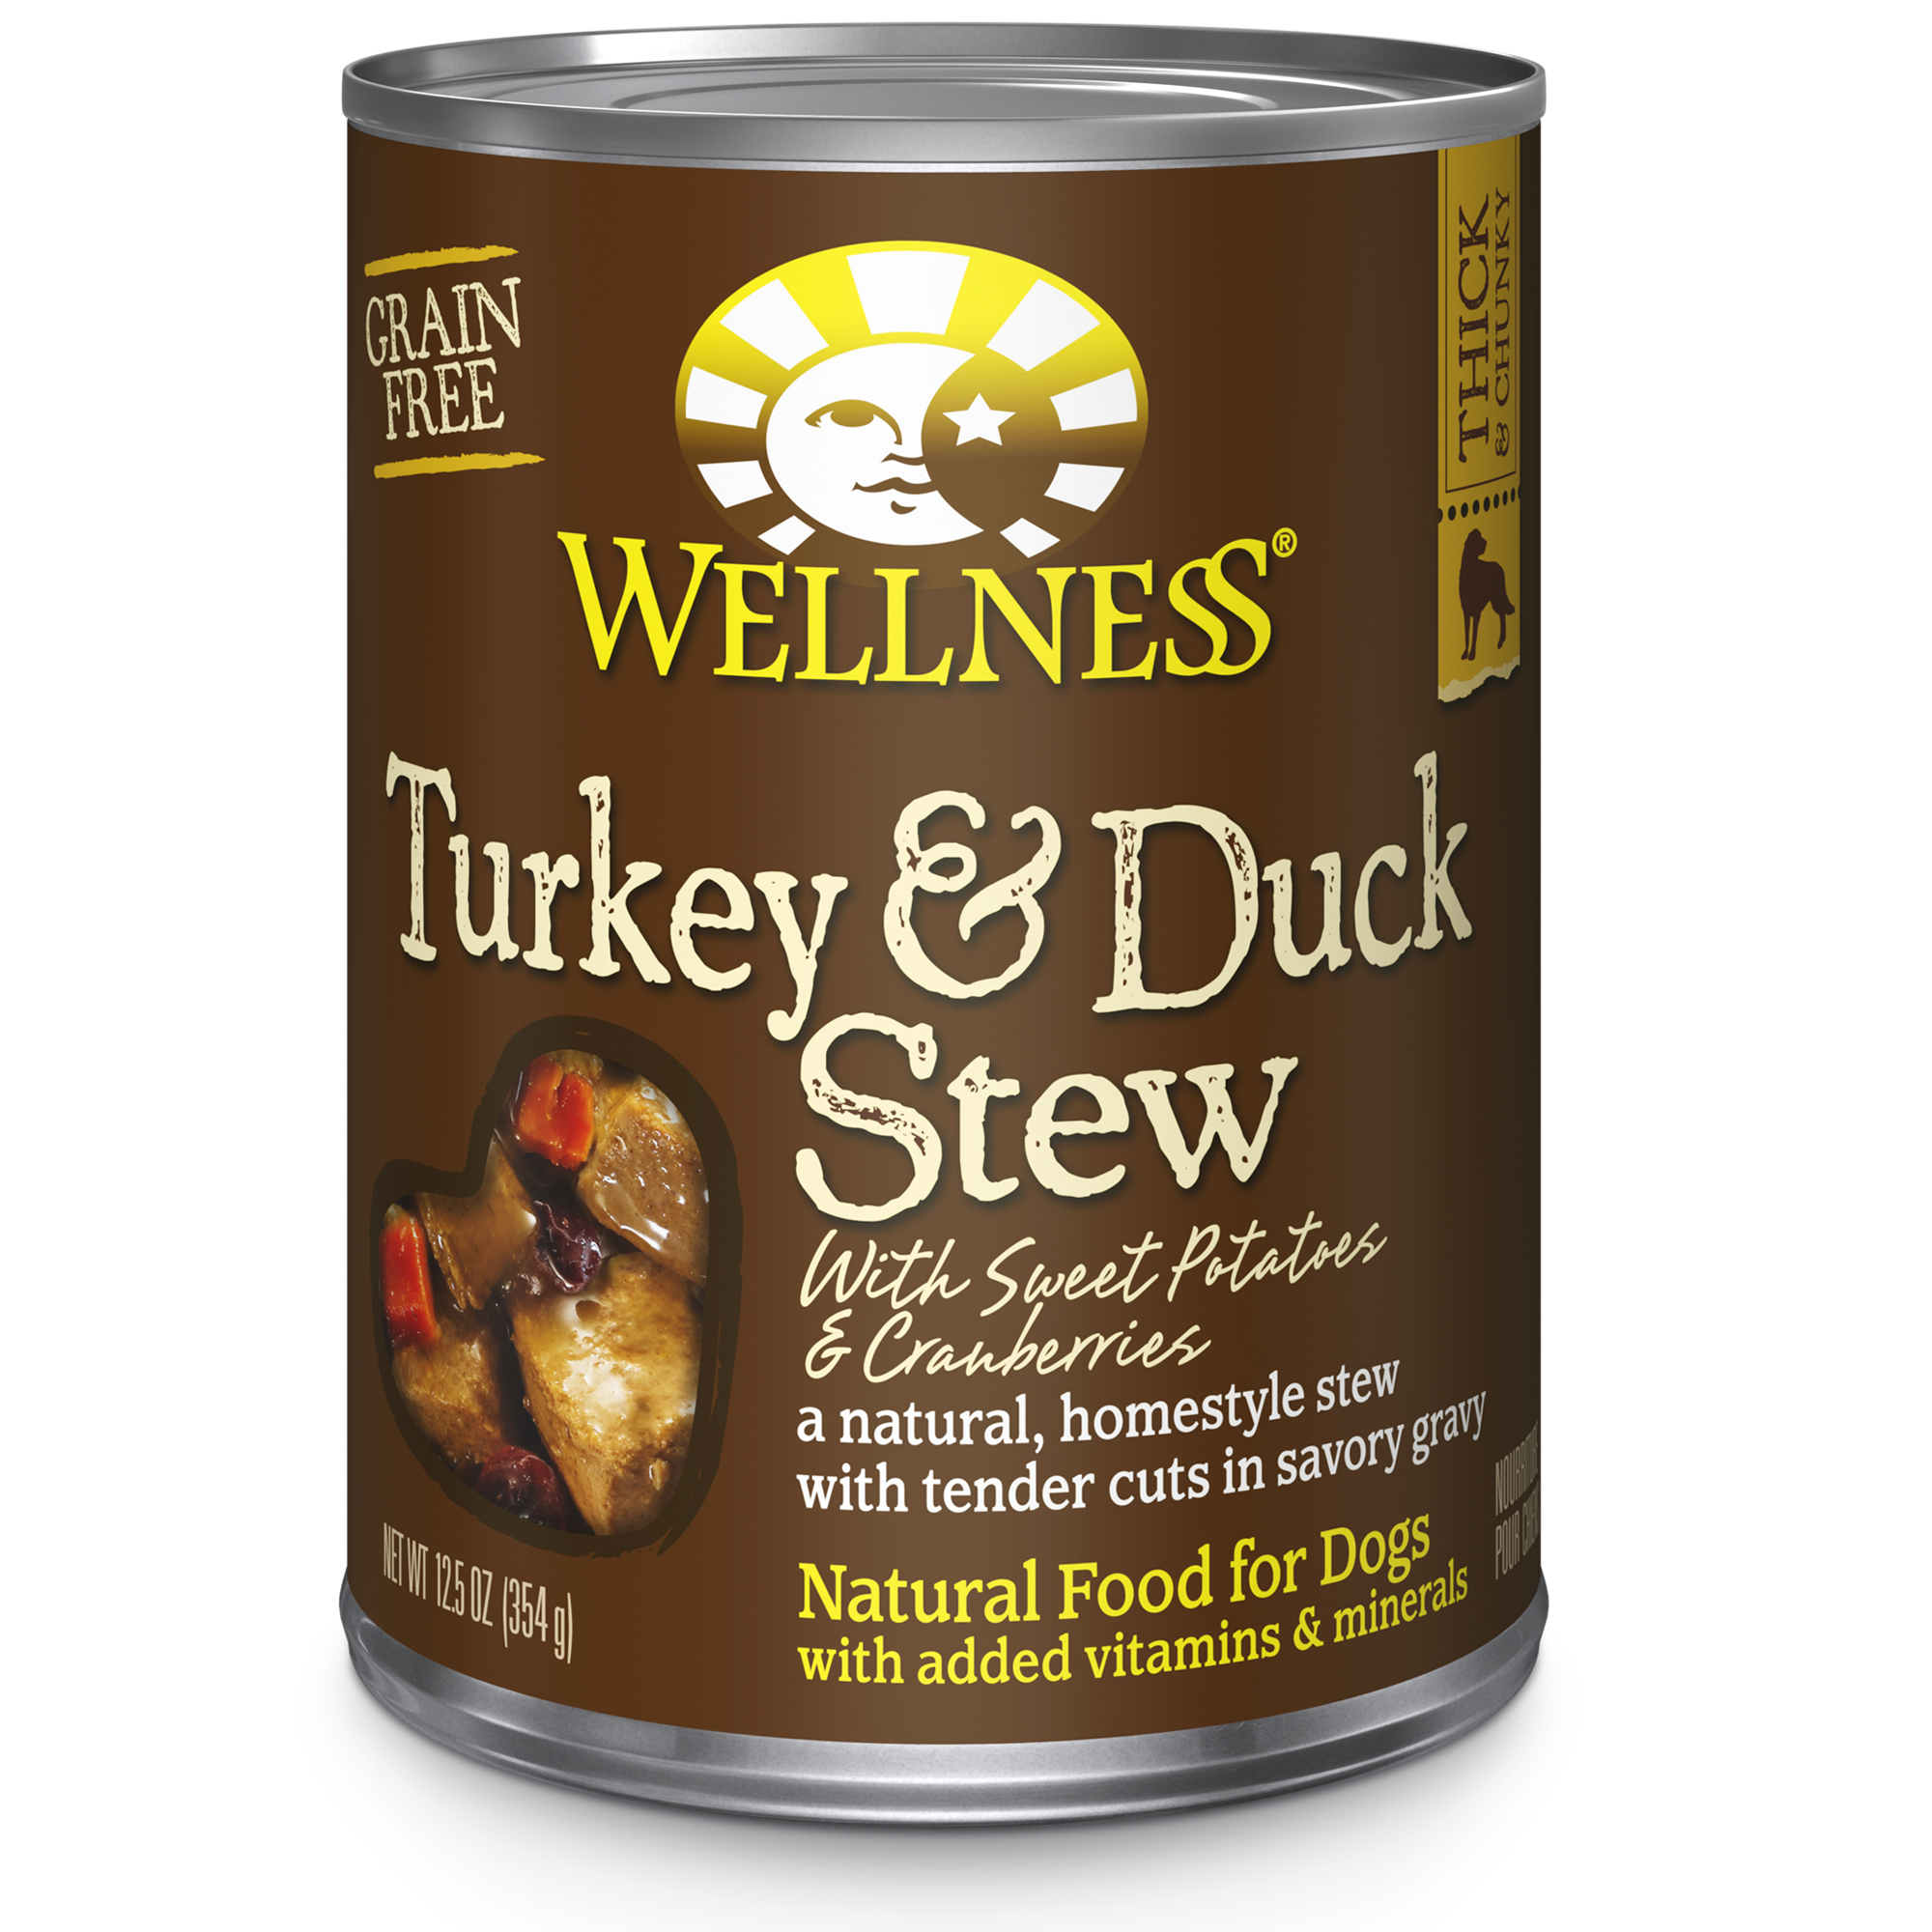 Turkey & Duck Stew